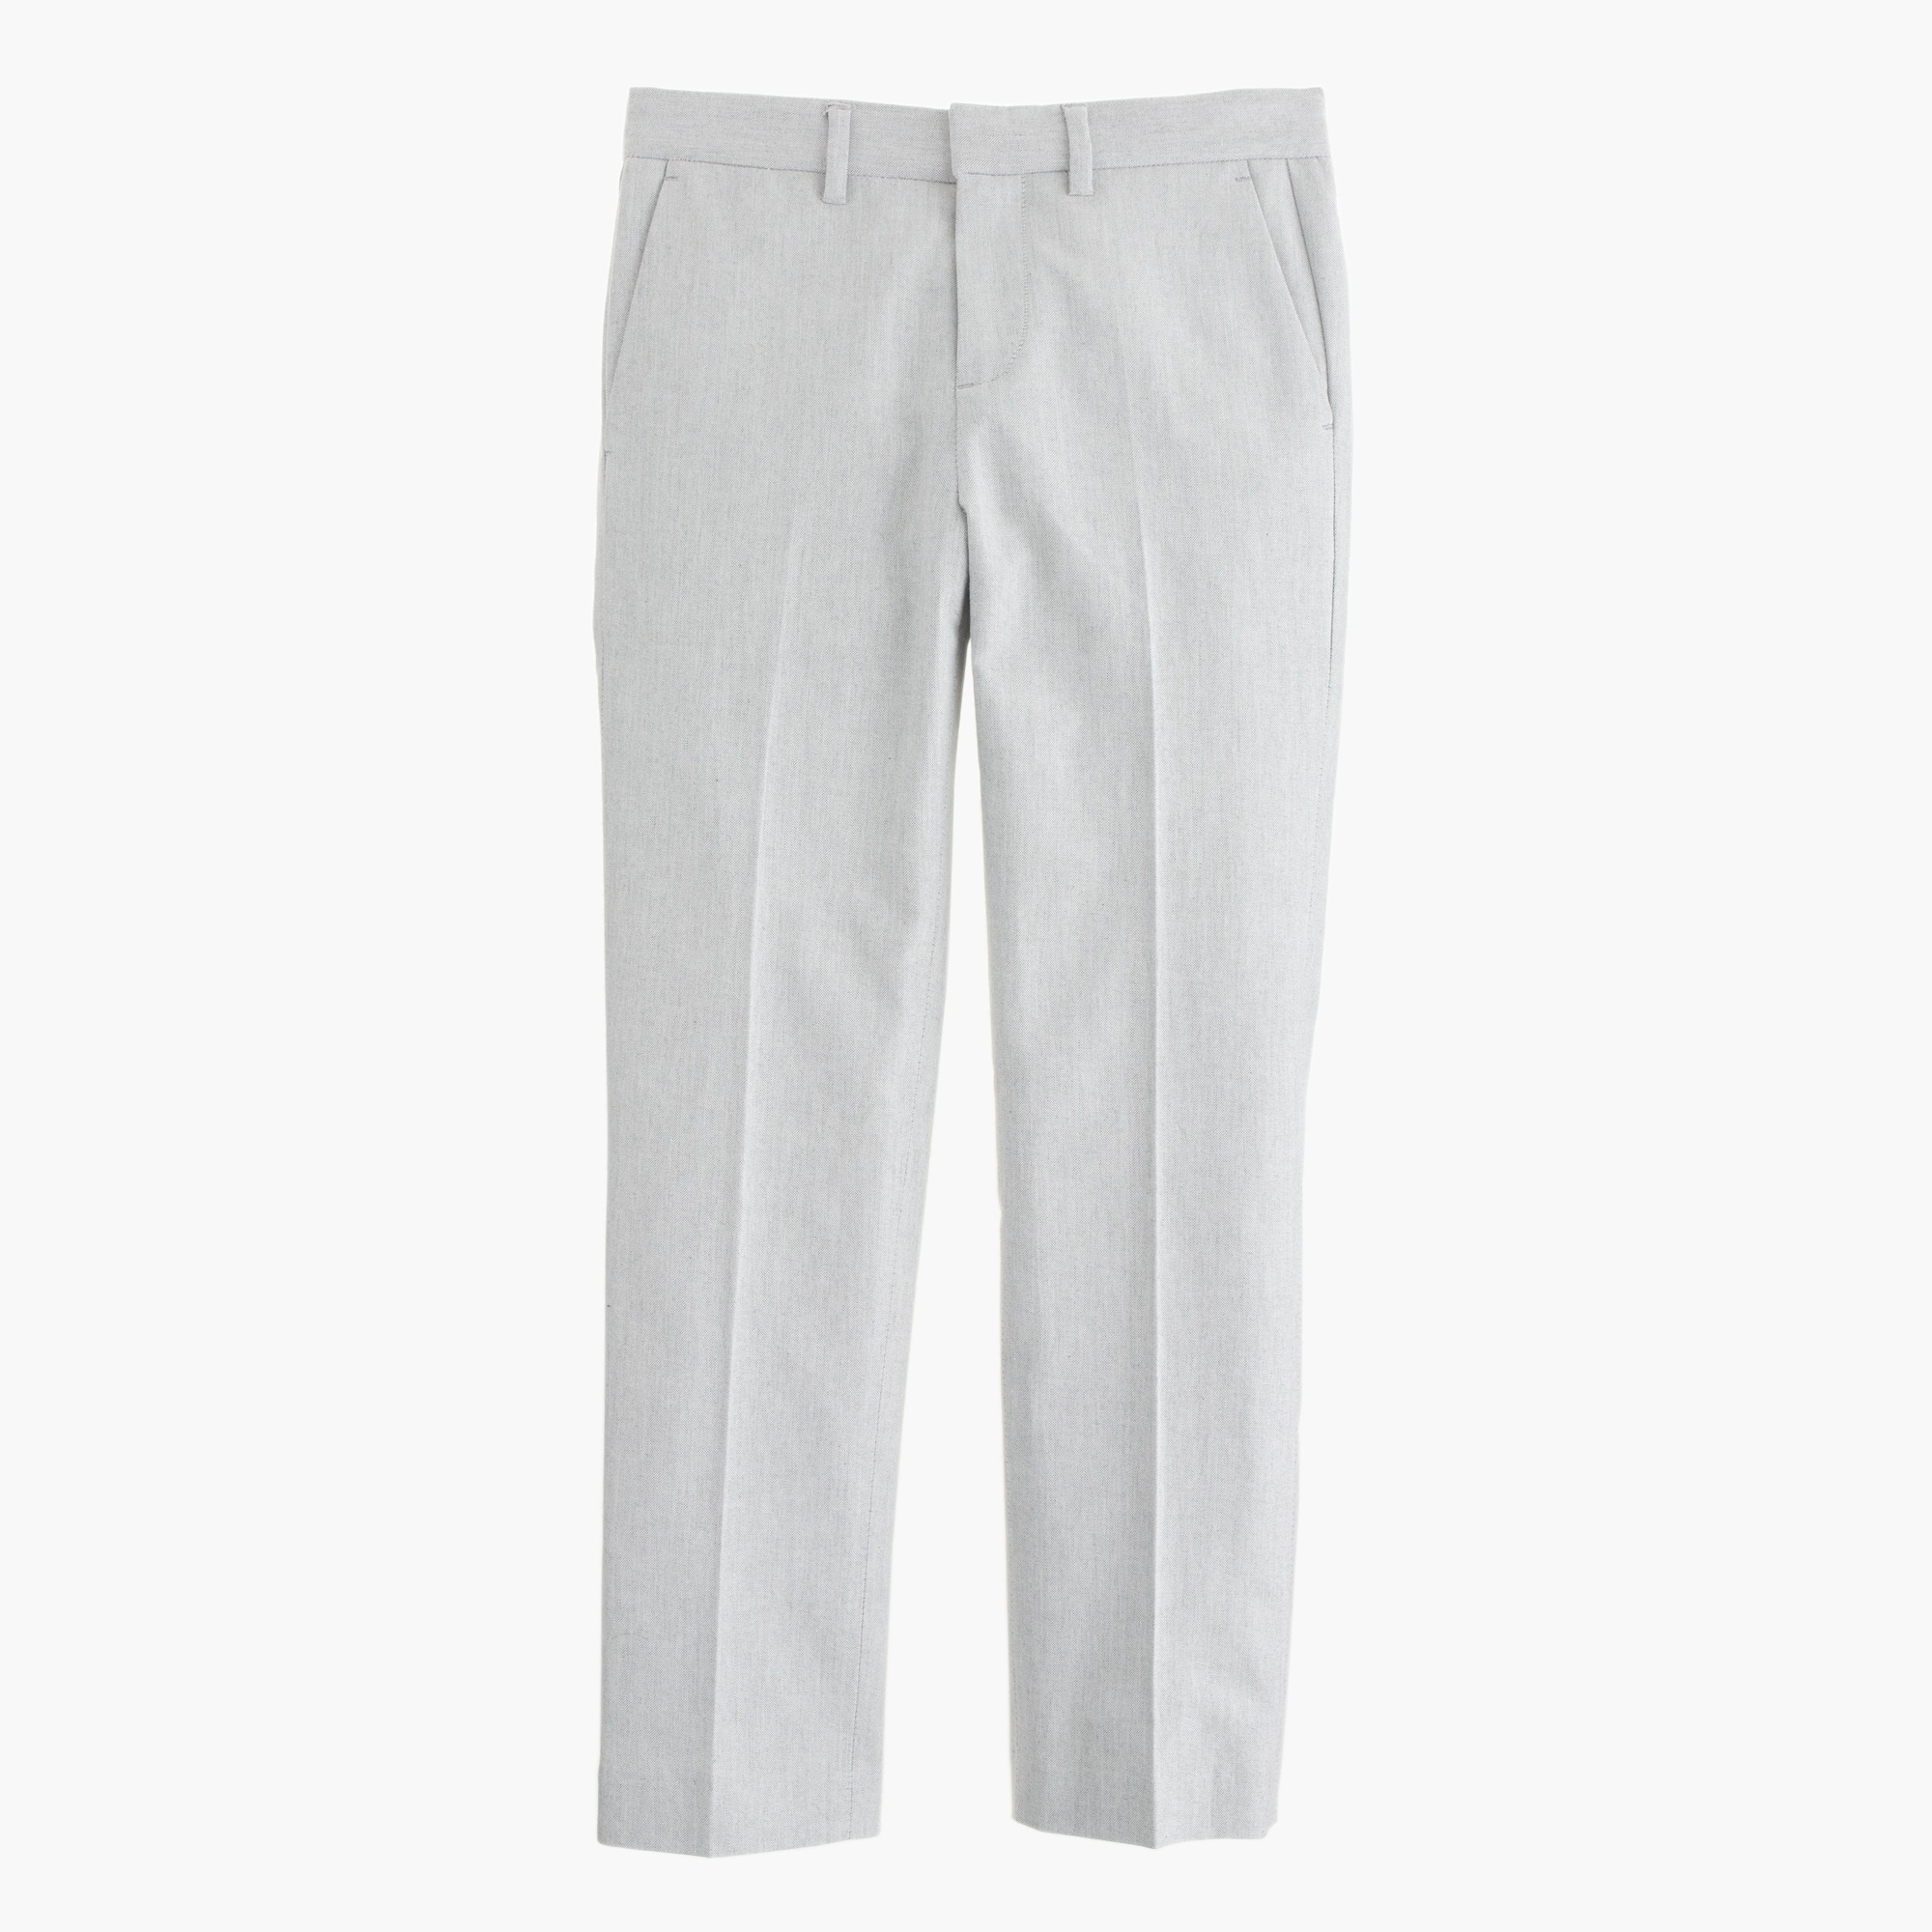 Boys' slim Ludlow suit pant in oxford cloth